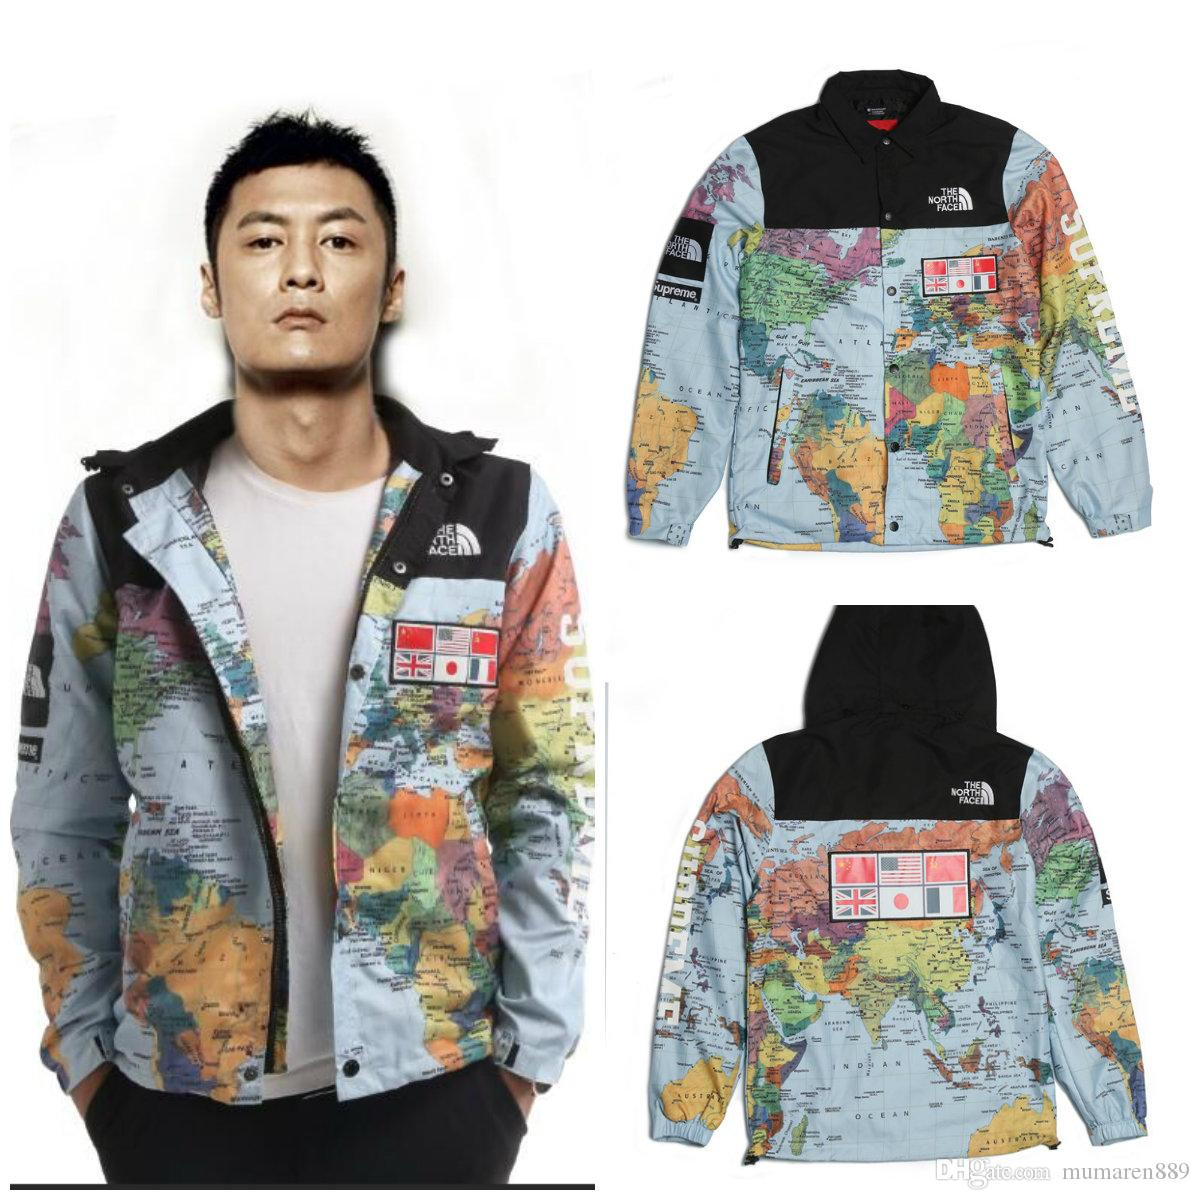 Europe and the united states tide brand sup tnface map of the world map jacket hooded windbreaker jacket europe and the united states tide brand sup tnface map of the world map jacket hooded windbreaker jacket denim jacket sheepskin collar jackets styles  Choice Image